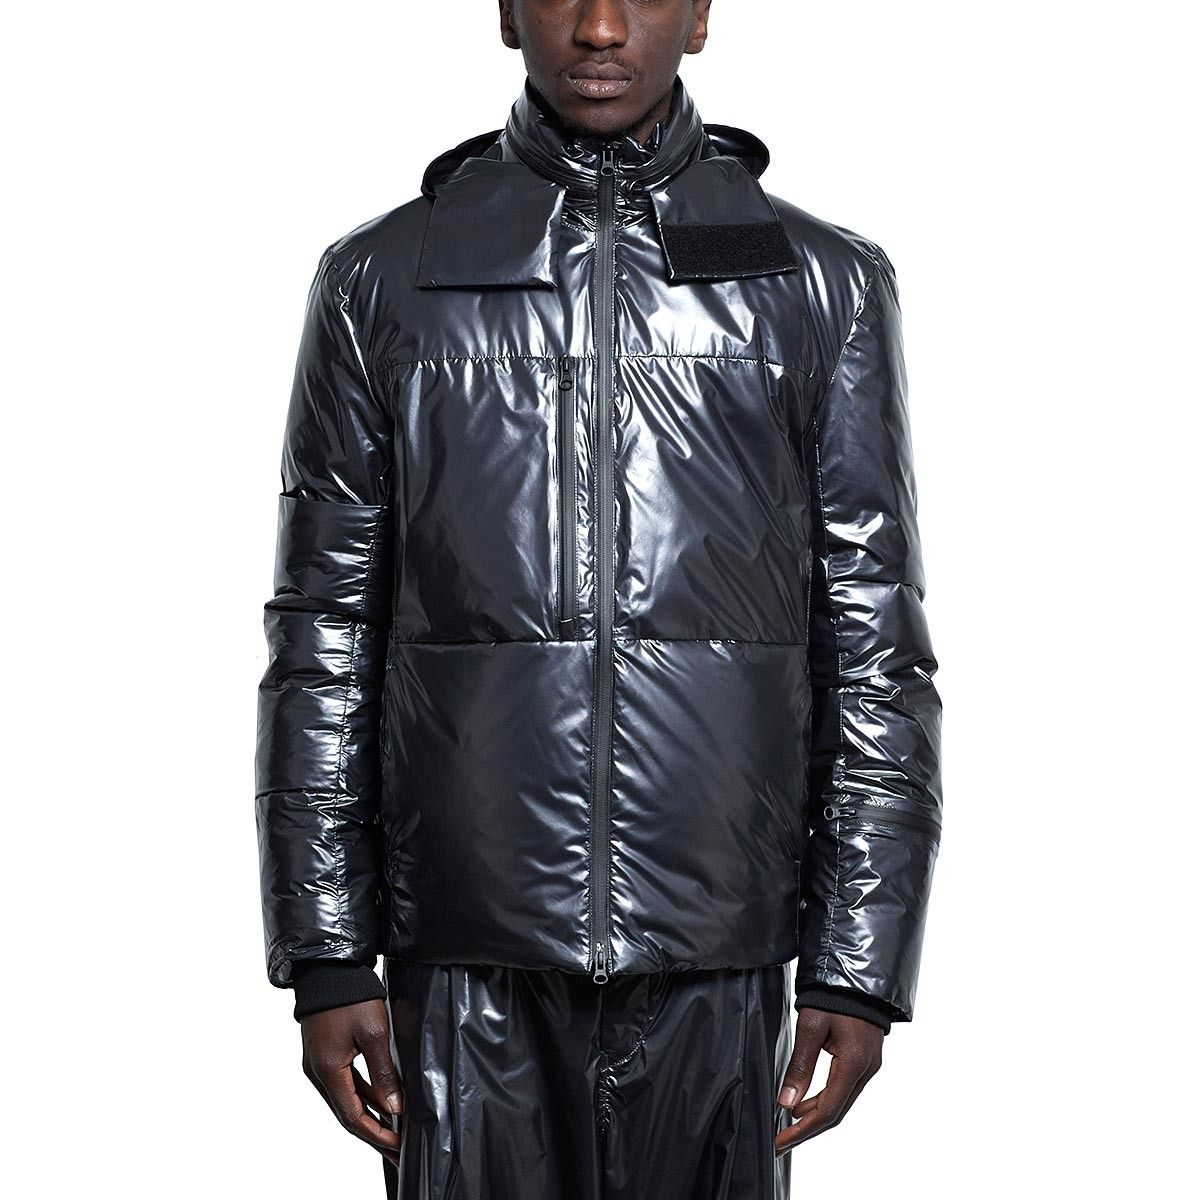 1fadc6d6eff58 Nylon down jacket from the F W2016-17 Y-3 by Yohji Yamamoto collection in  night metallic